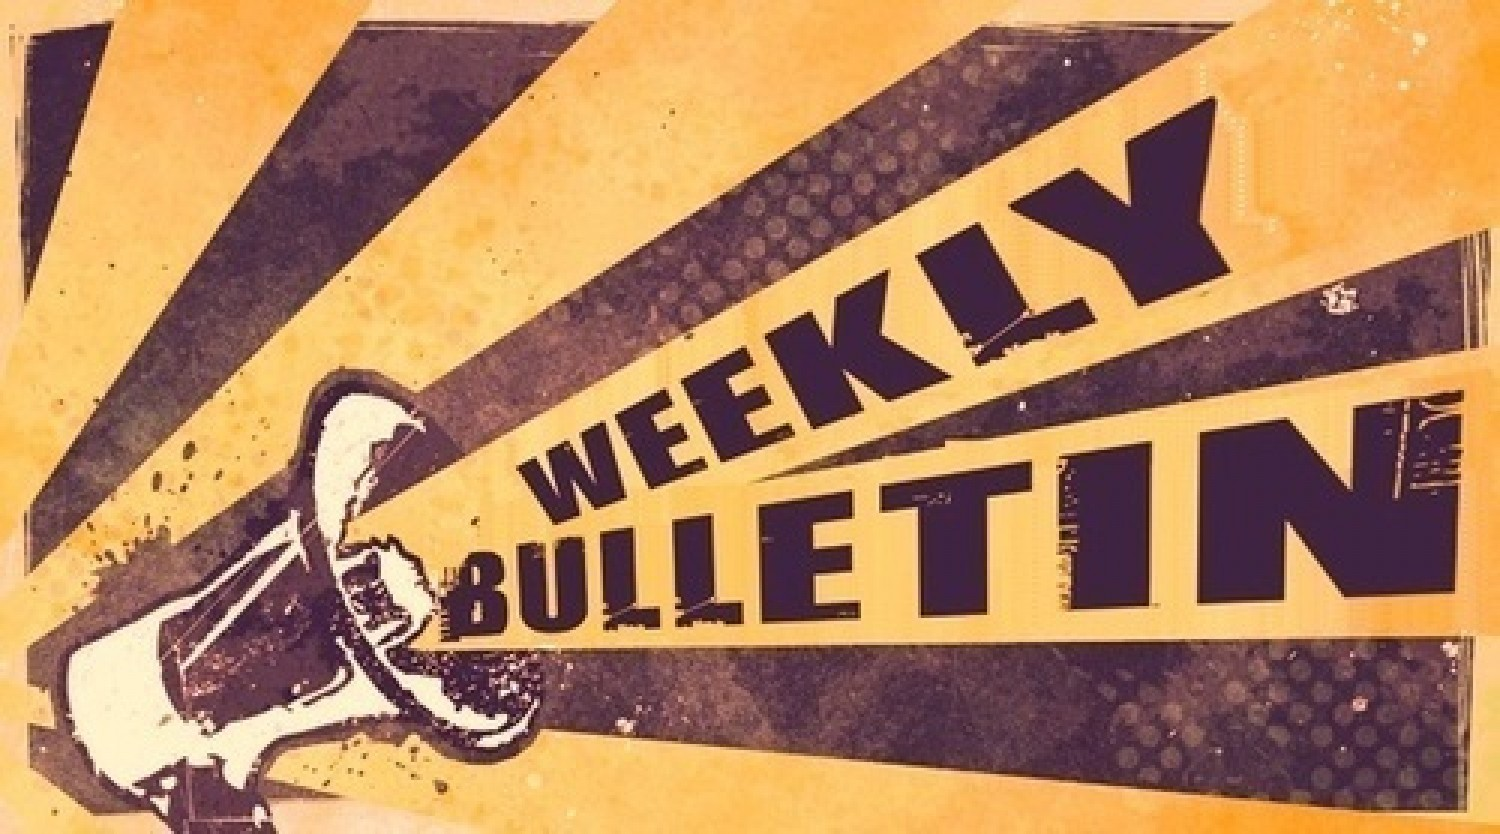 Weekly Bulletin June 28th